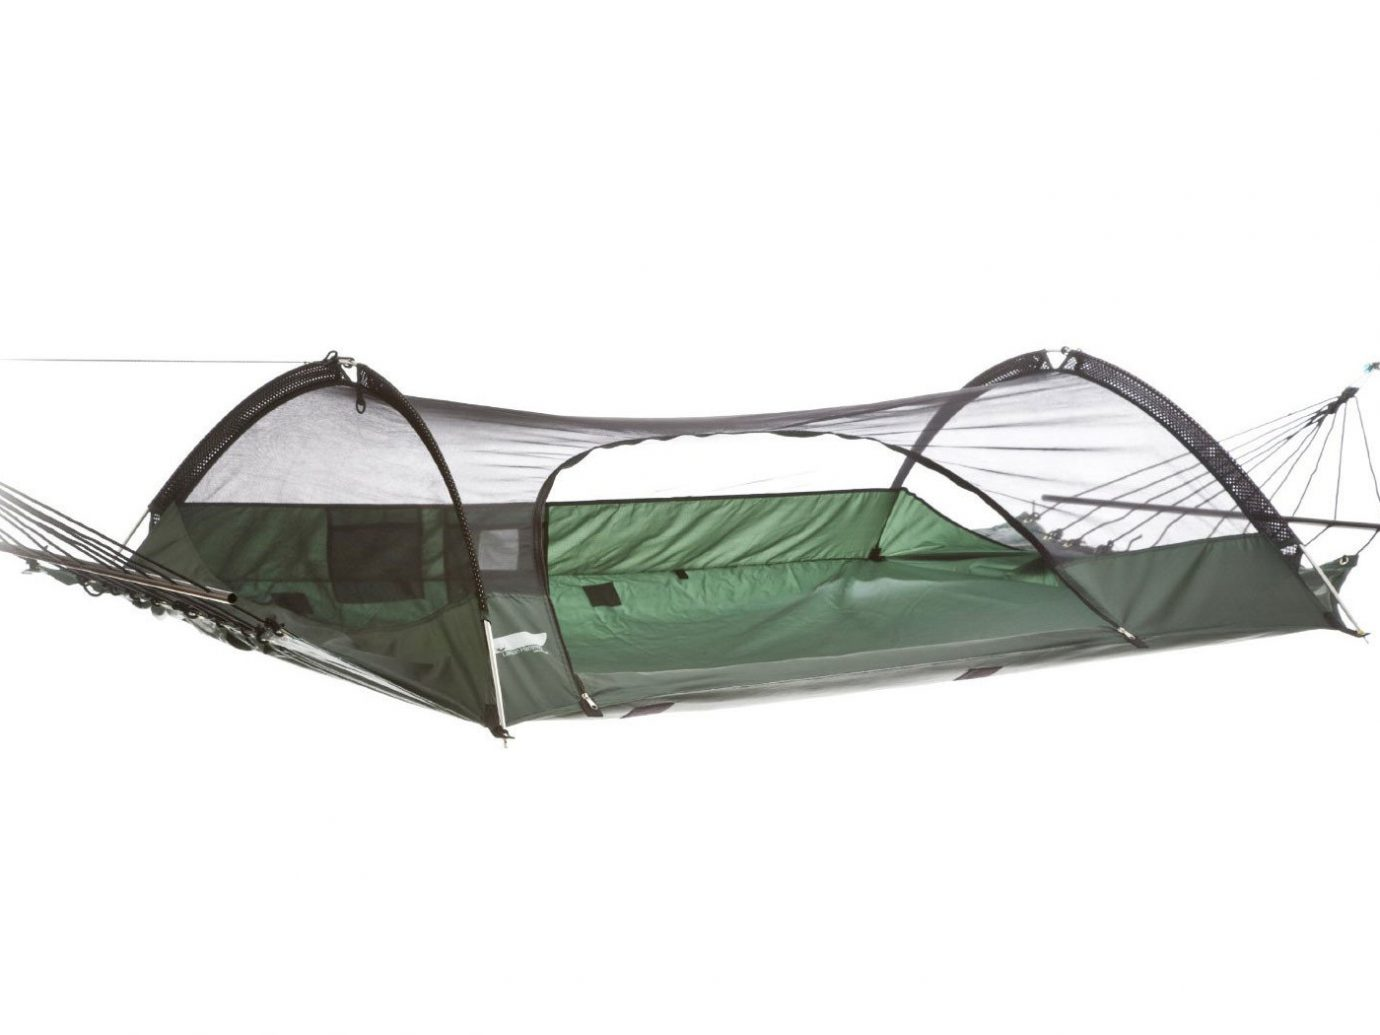 Style + Design tent product automotive exterior green net outdoor object canopy bed frame